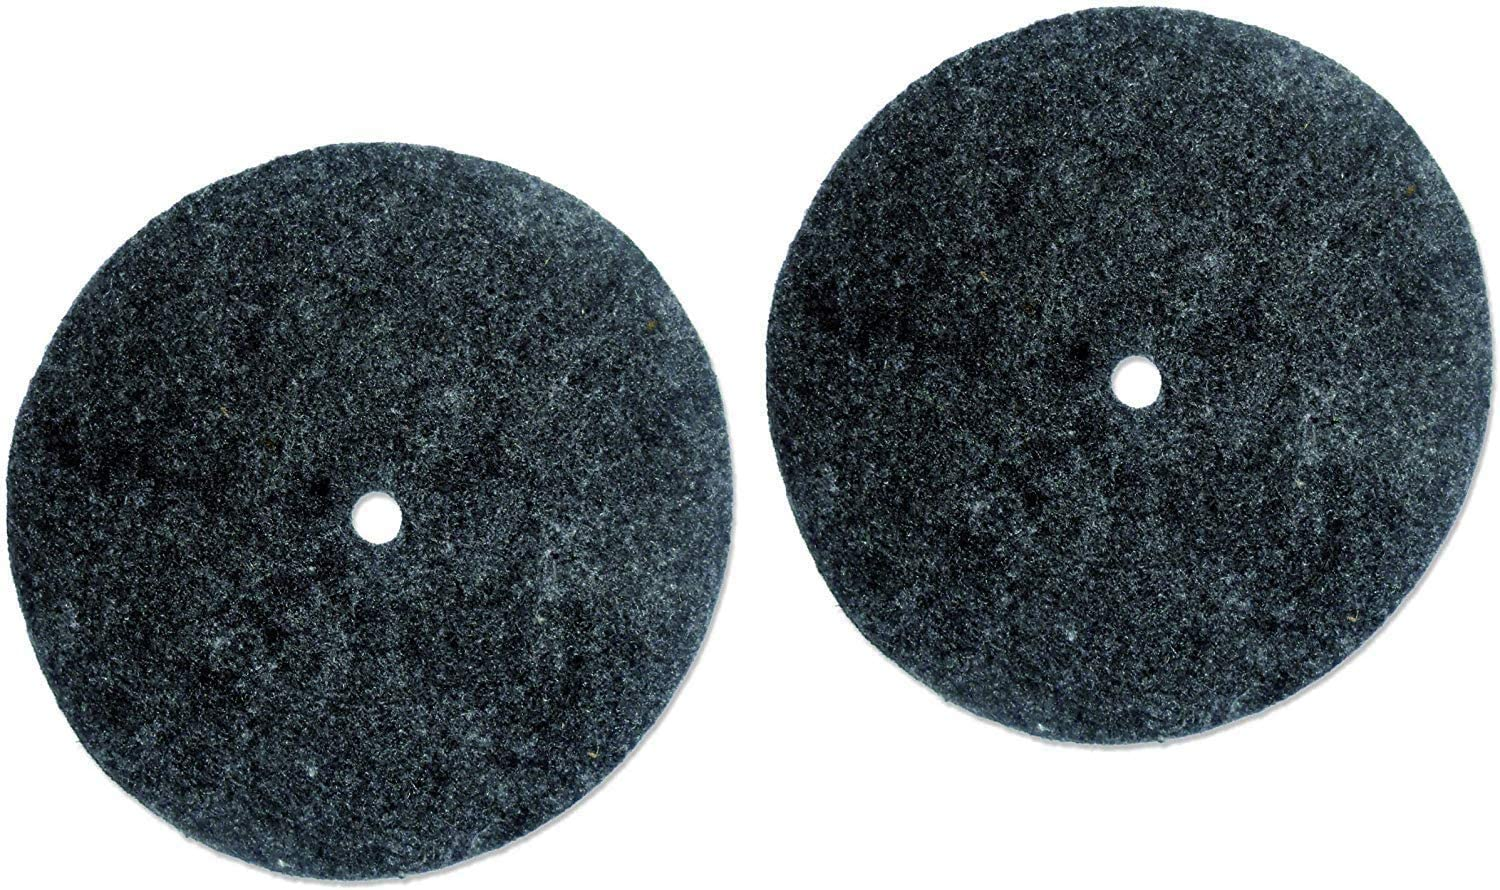 Koblenz 6 Inch Bombing new work Felt Buffing # Pair Part Max 89% OFF 45-0103-7 Pads